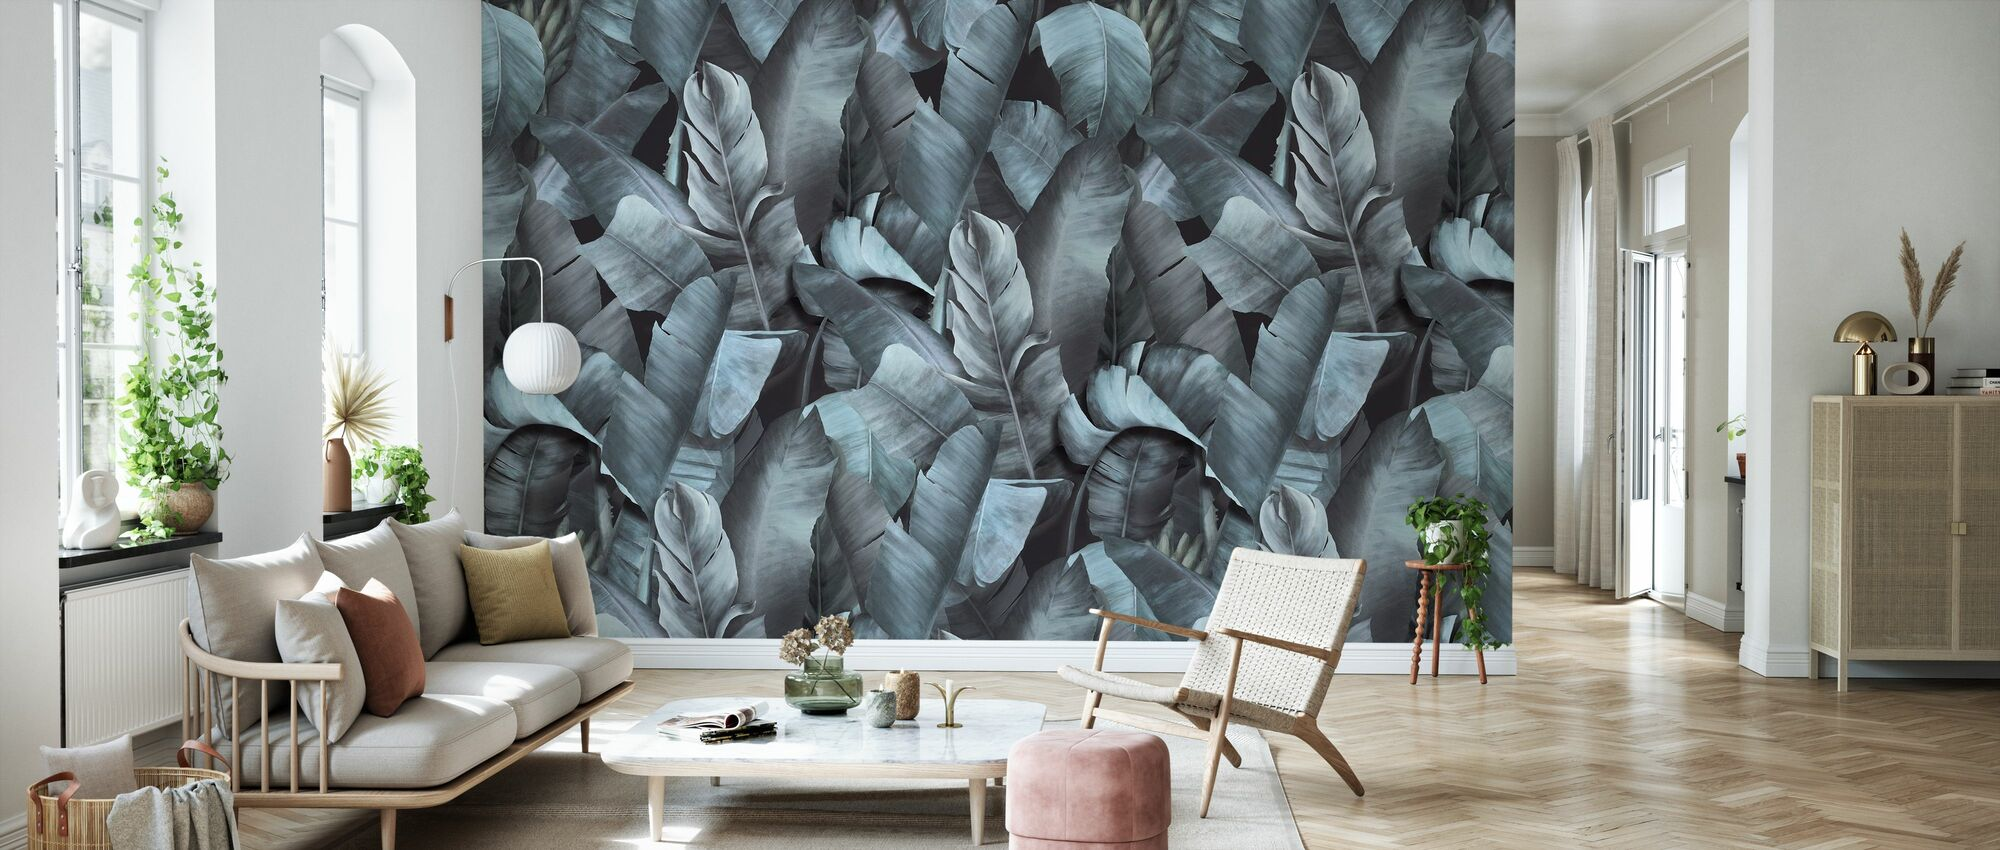 Botany Tropical Silver Mist - Wallpaper - Living Room